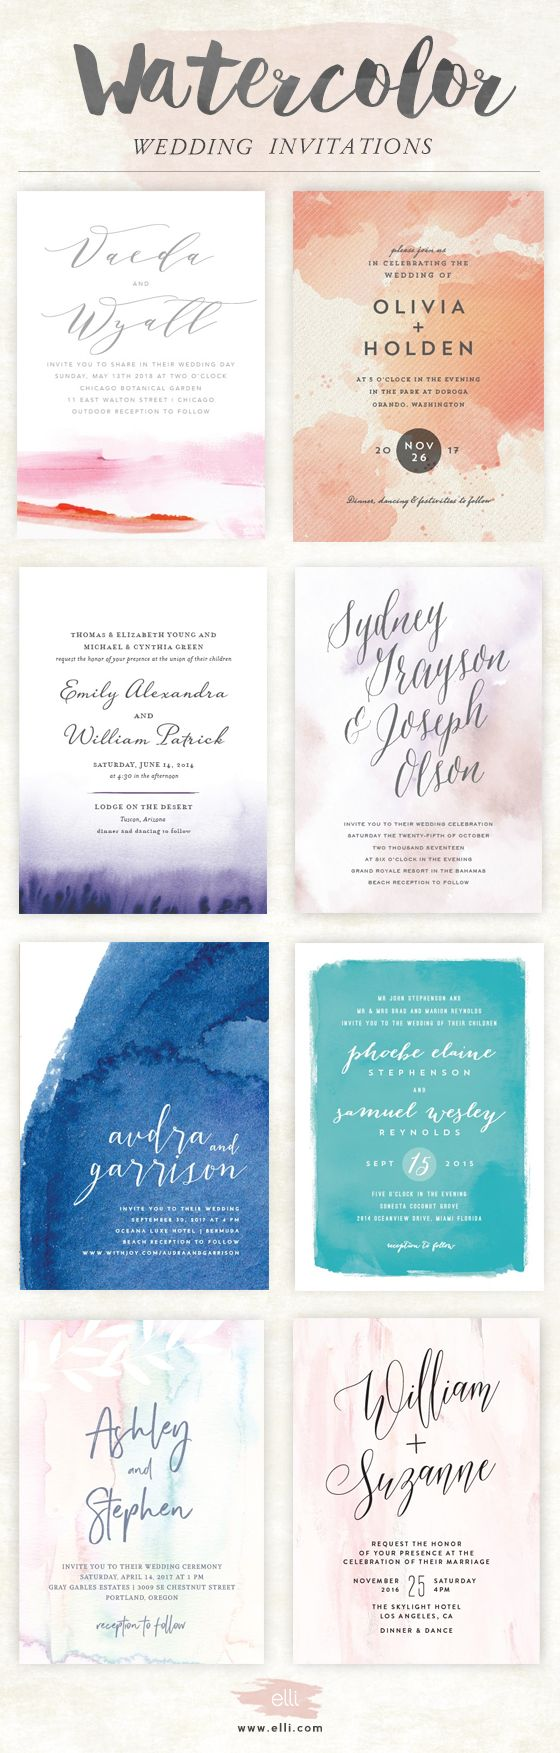 646 best Wedding | Pretty Paper images on Pinterest | Invitations ...